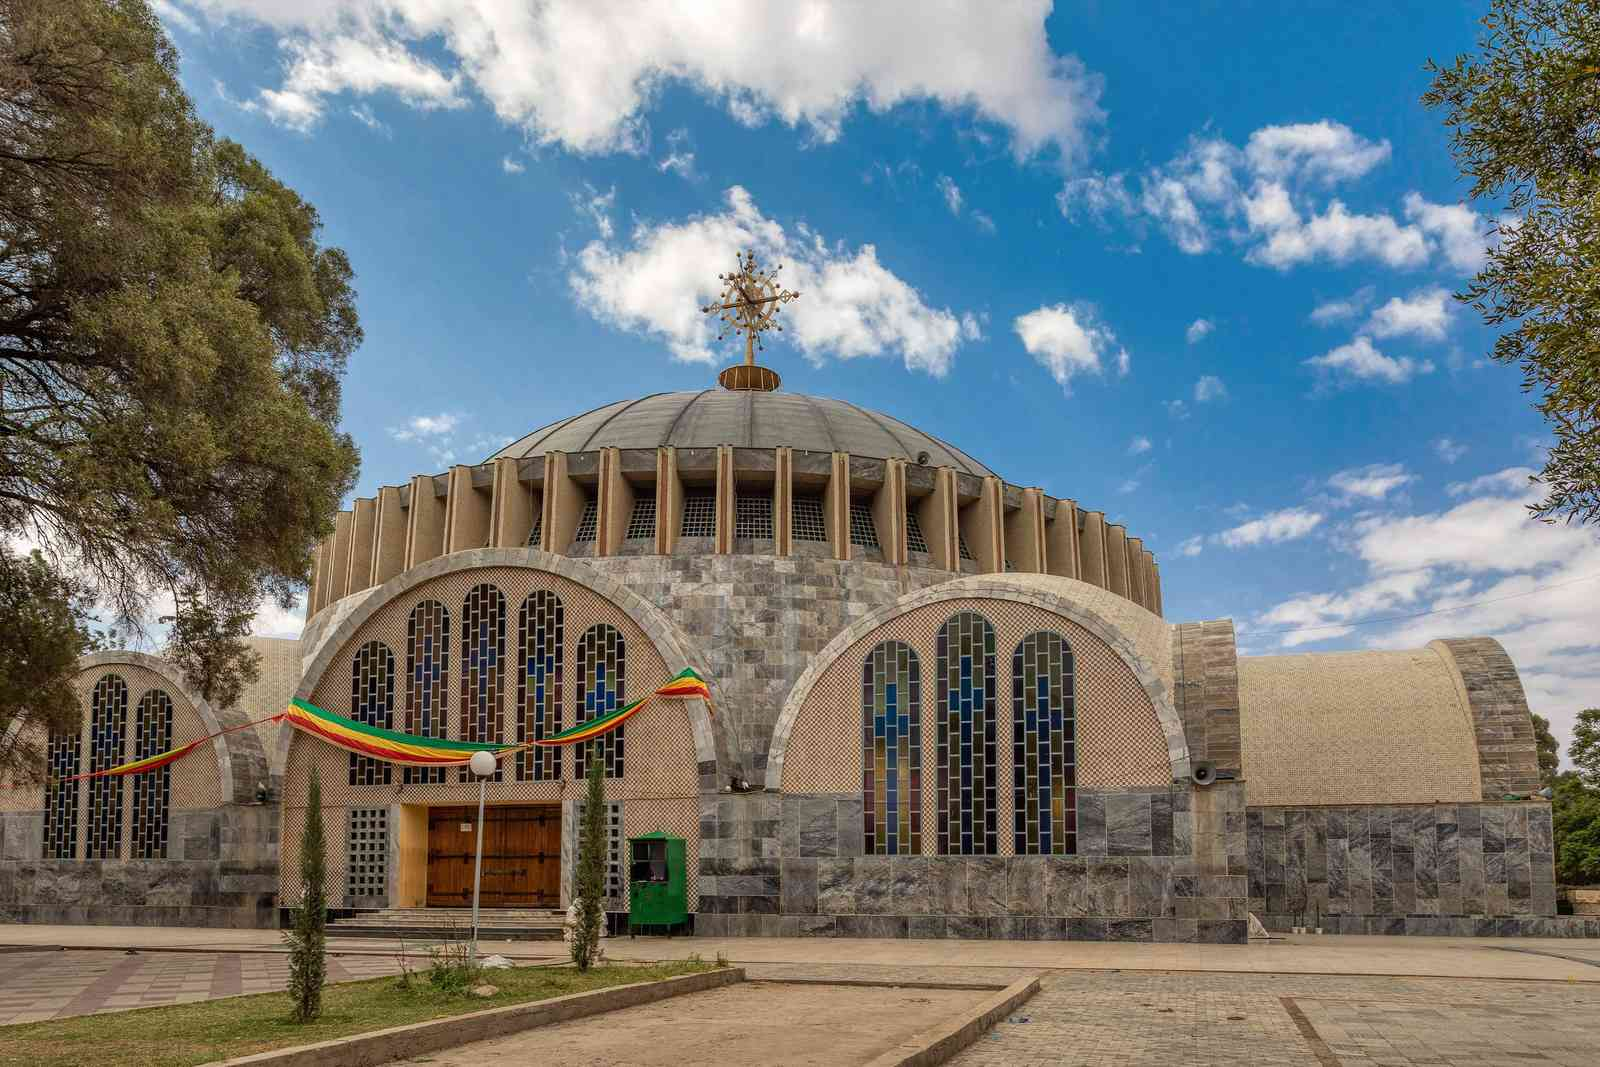 Church of Our Lady St Mary of Zion, Ethiopia (Shutterstock)